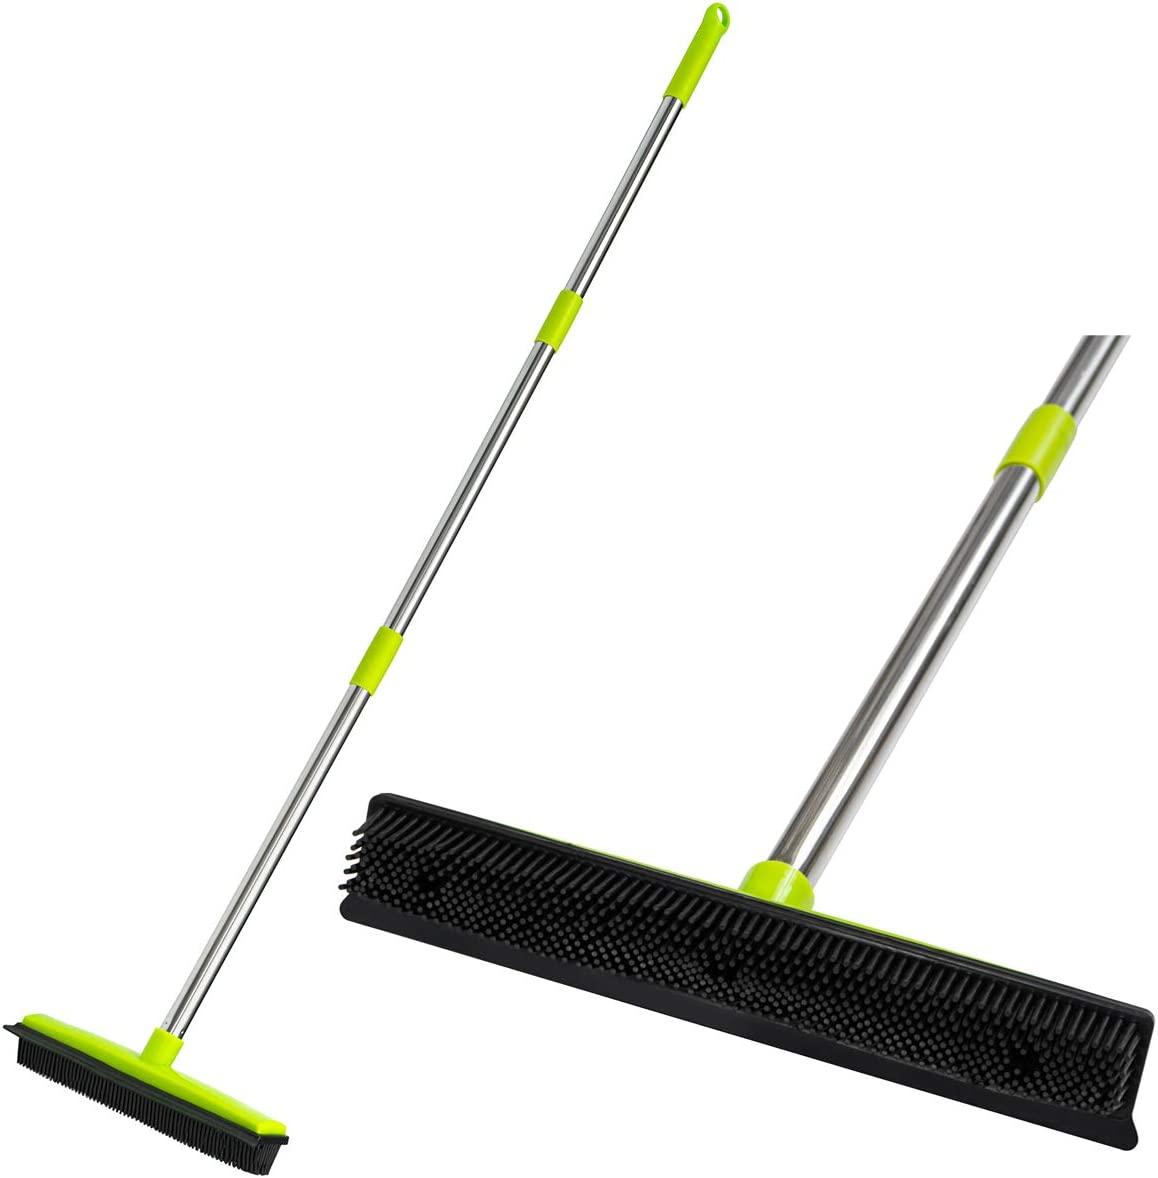 "CGACOL Rubber Floor Broom Carpet Rake Rubber Brush Broom with Soft Squeegee Adjustable Long Handle Pet Hair Removal Broom for Househeld Cleaning Floor Indoor Outdoor 49"" Length"